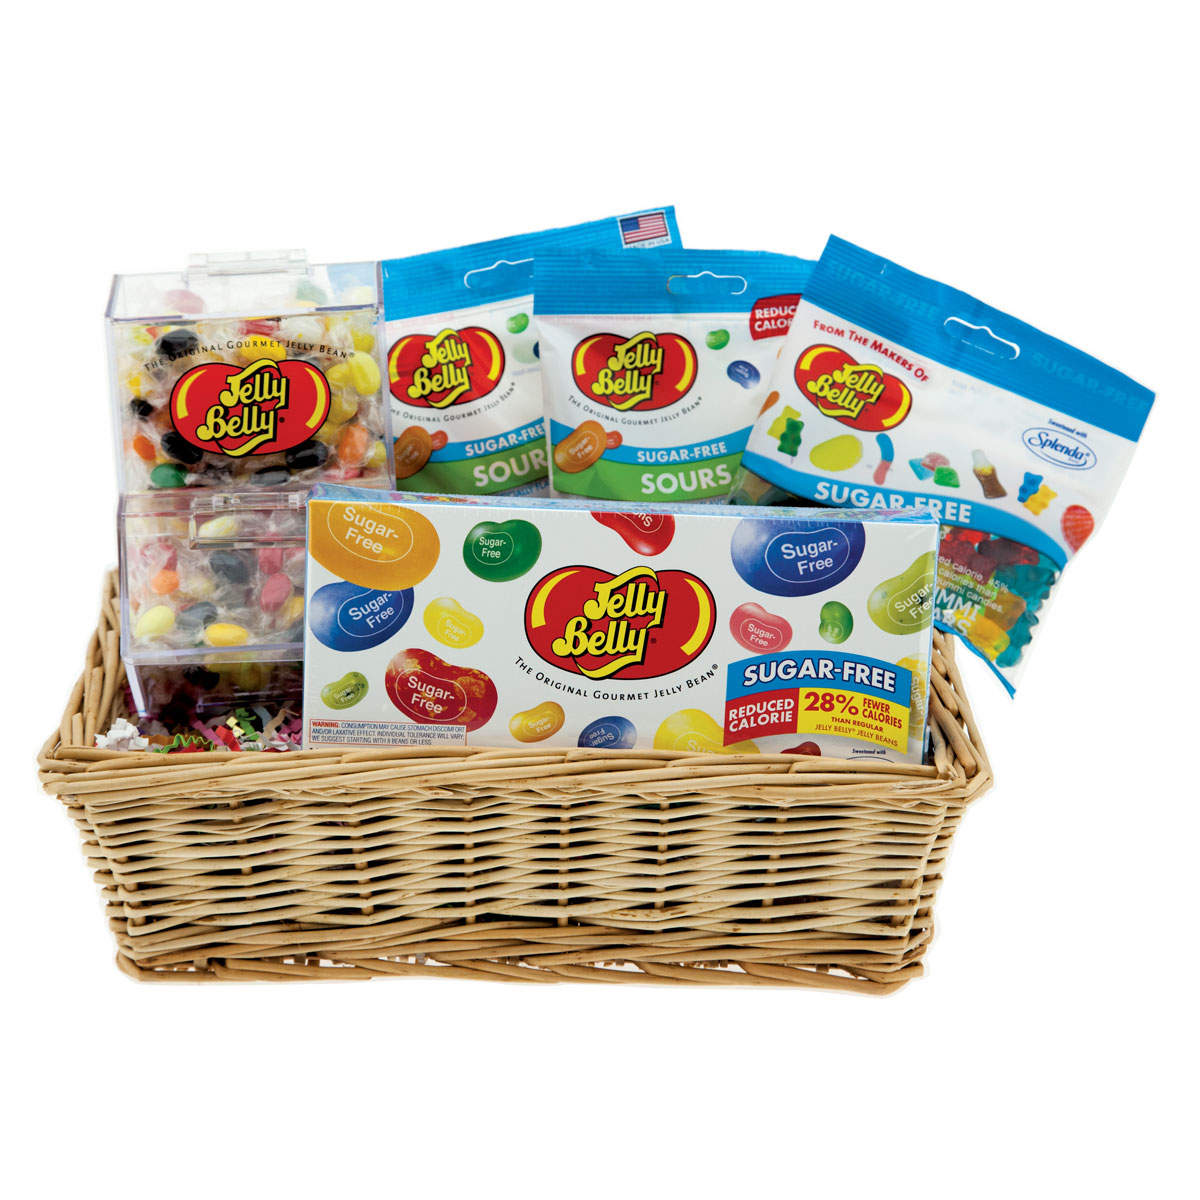 Sugar free assortment gift basket jelly belly candy company negle Choice Image